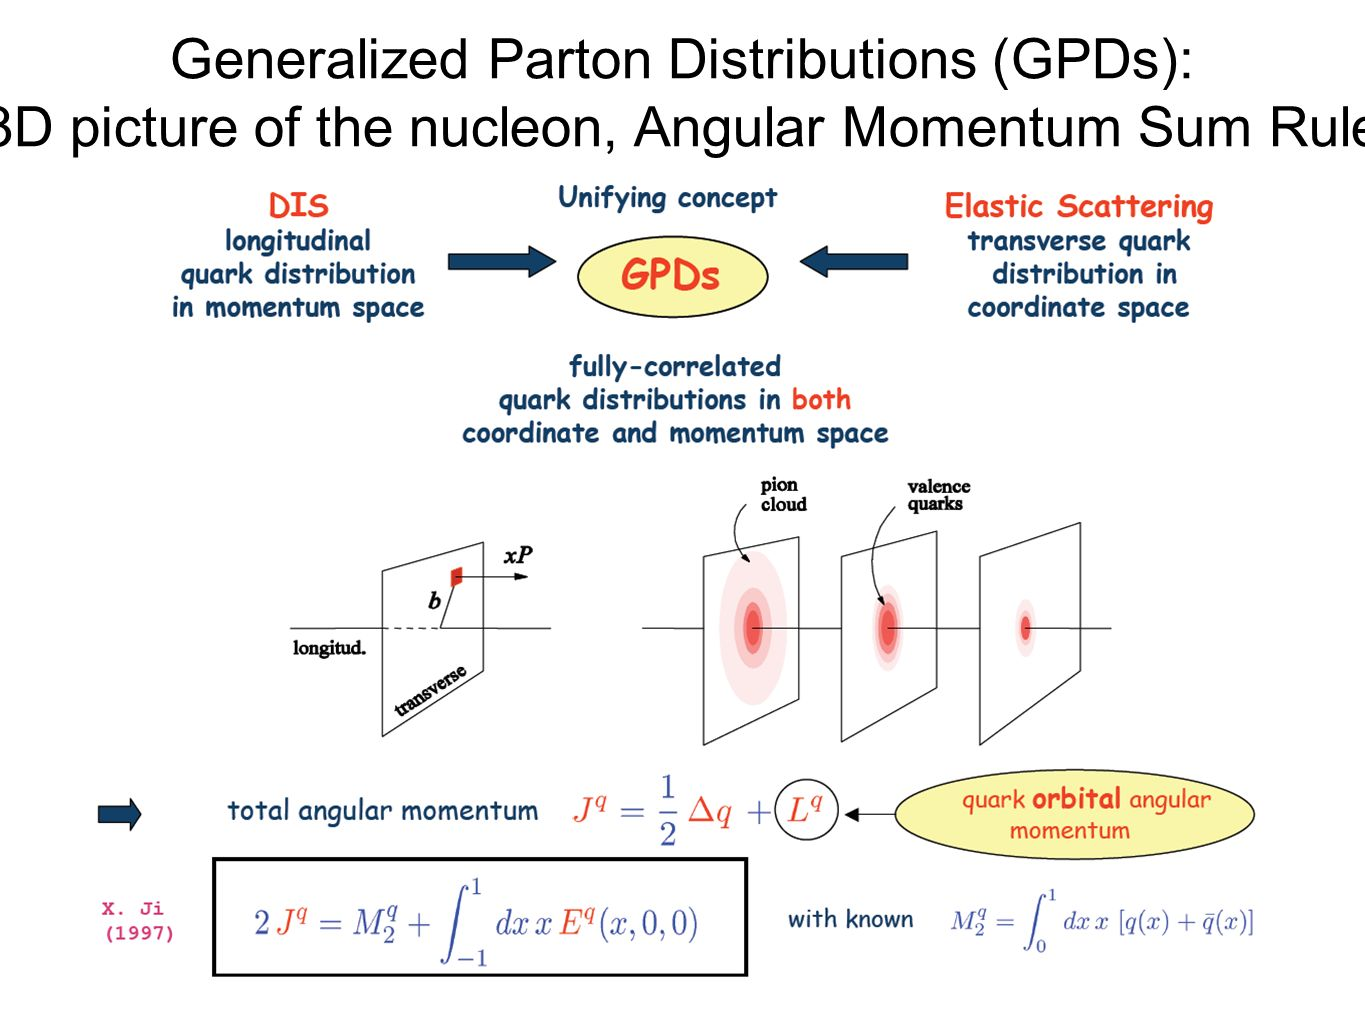 Generalized Parton Distributions (GPDs): 3D picture of the nucleon, Angular Momentum Sum Rule